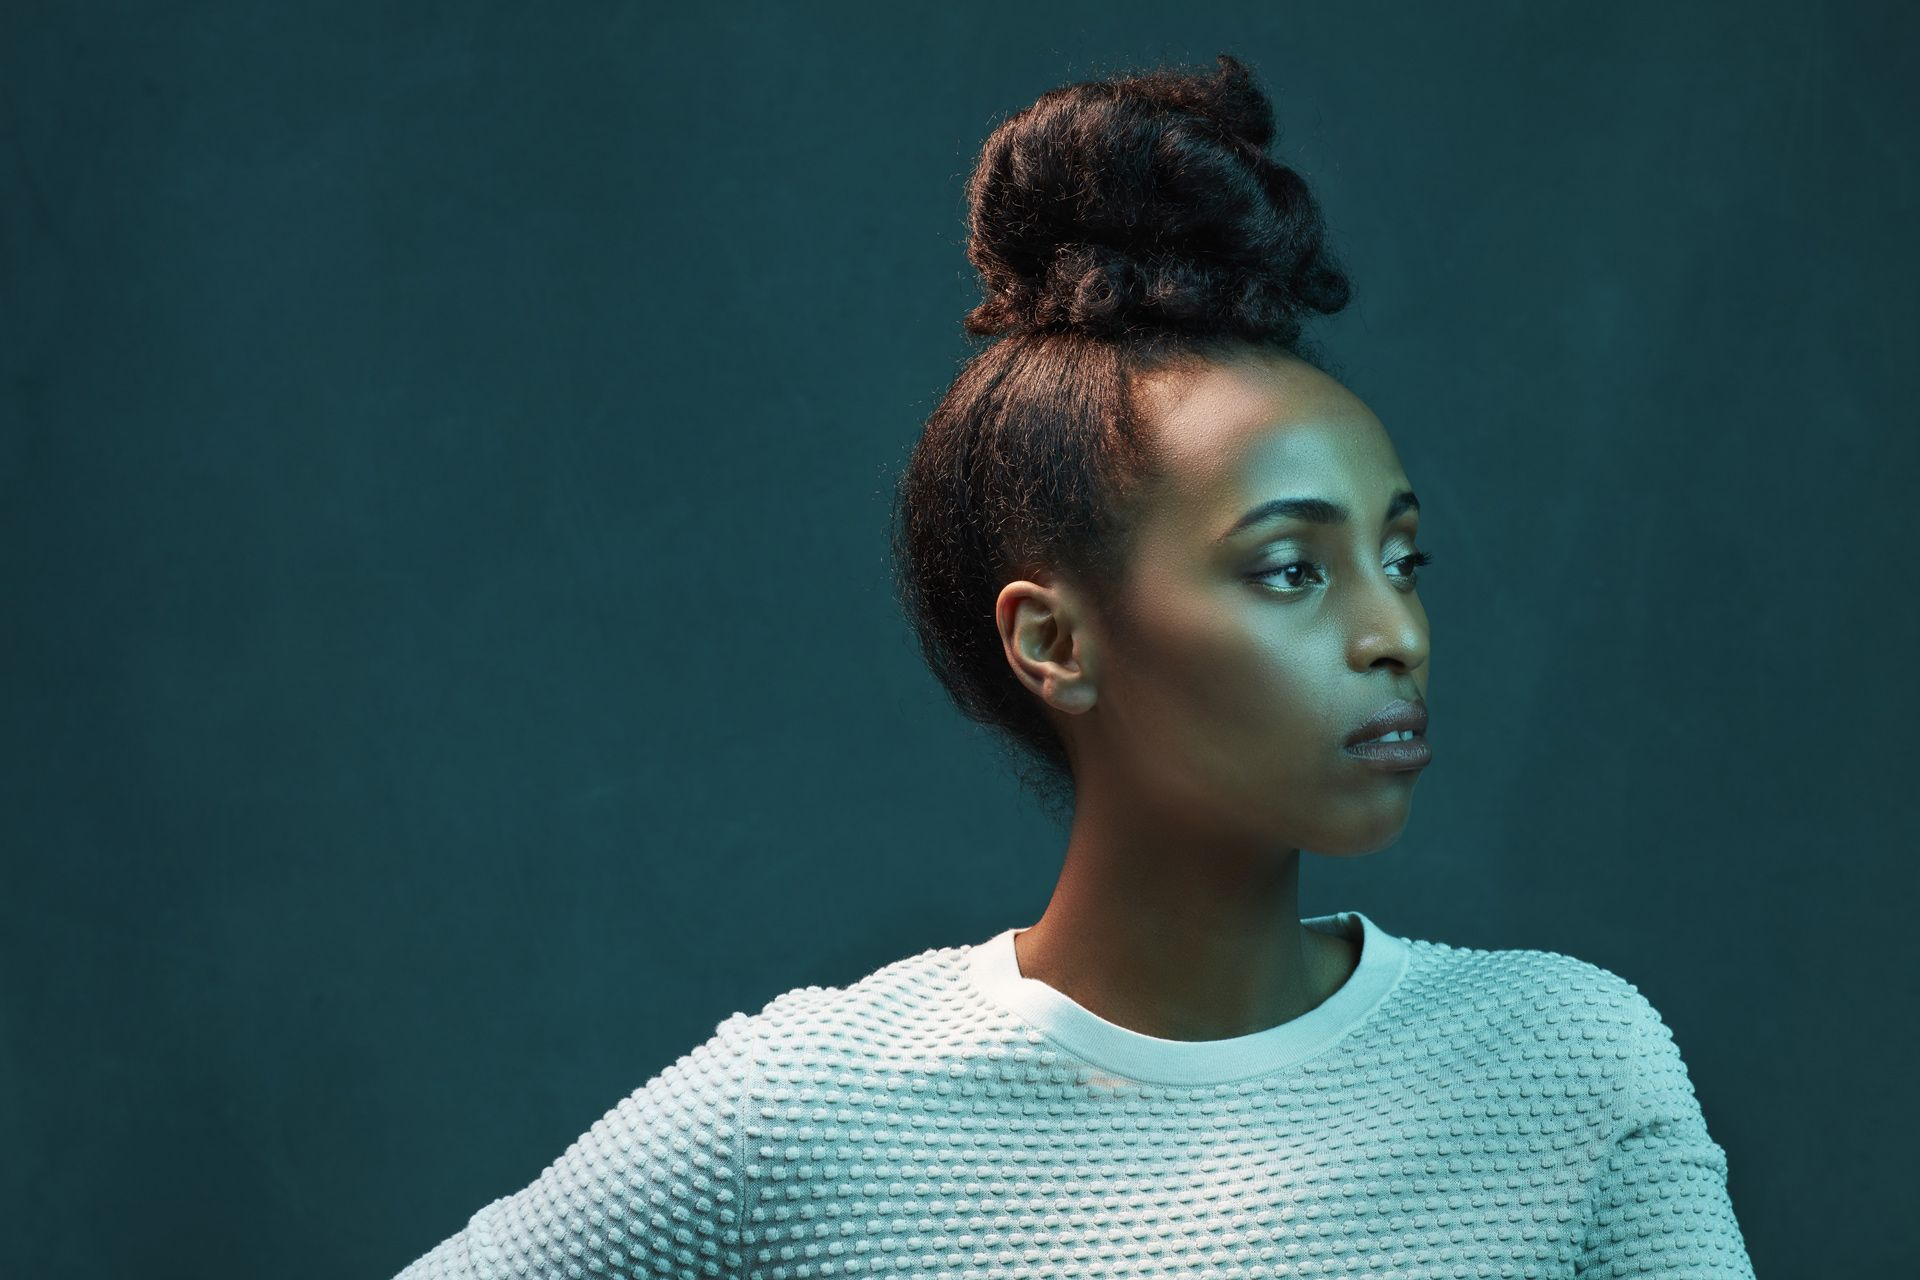 portrait of black woman wearing white blouse hair up looking pensively away on dark green background by Simon Duhamel for creative project Introspect